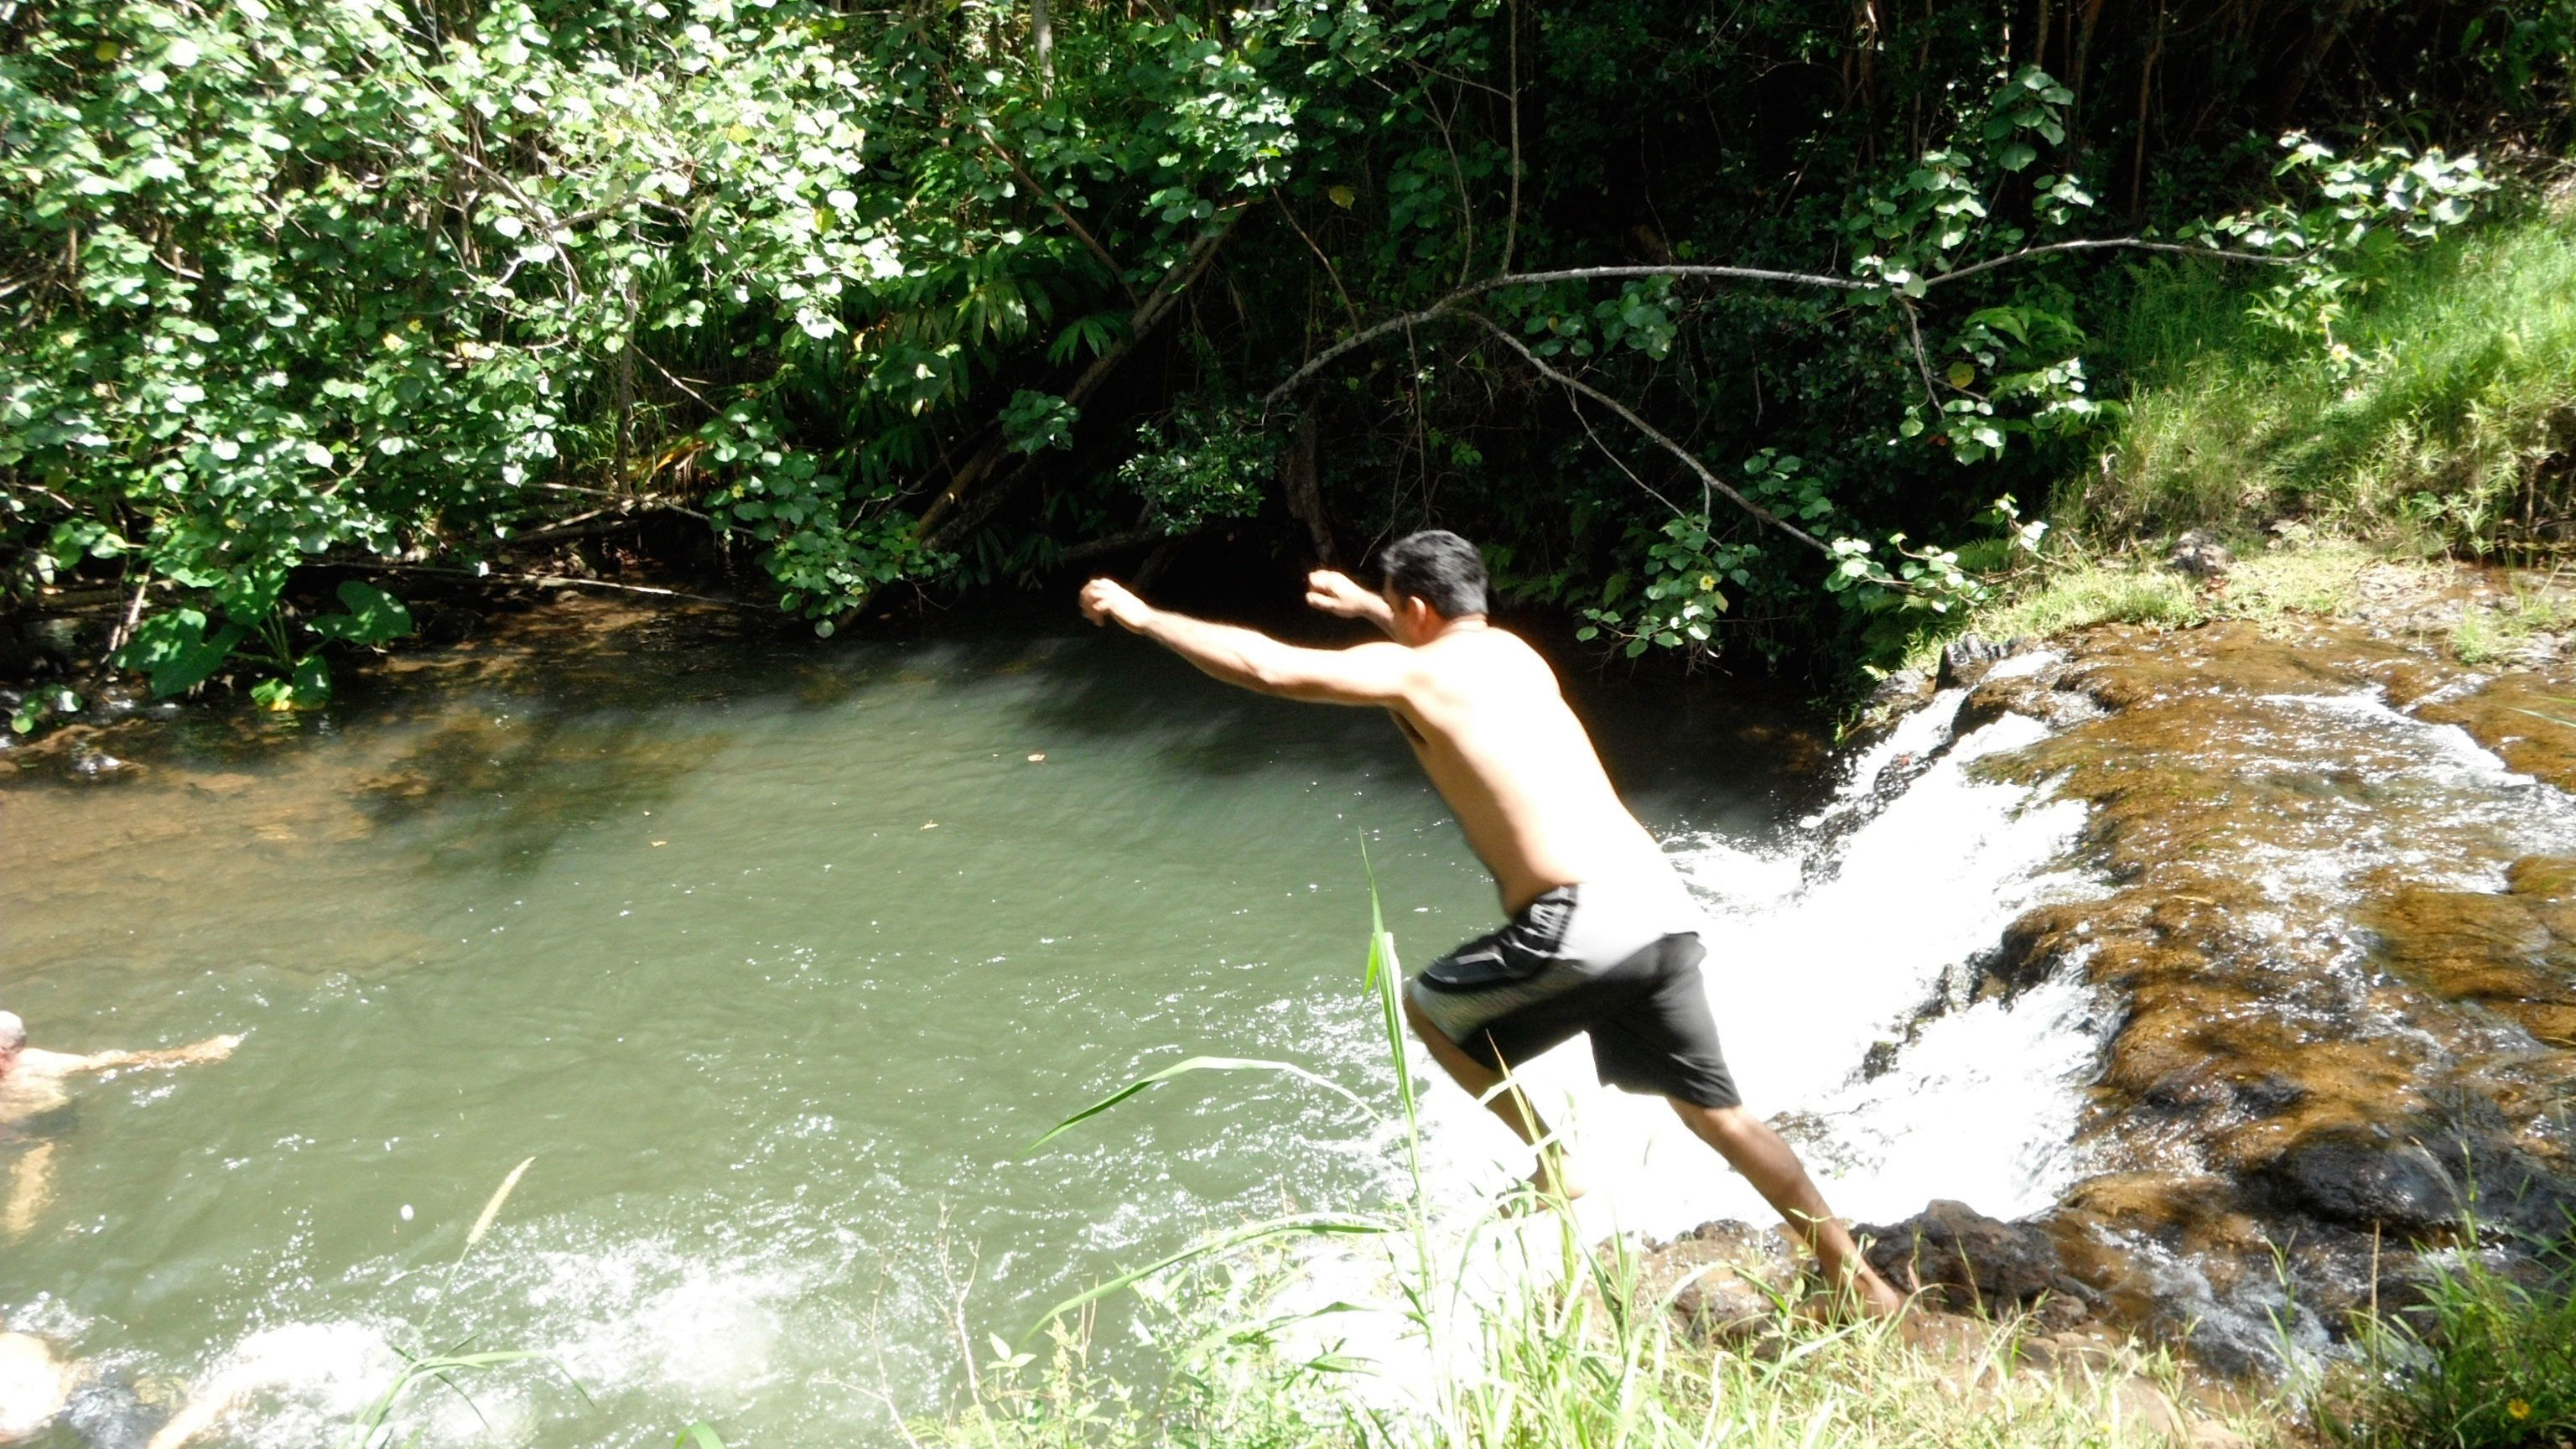 man jumping into pond from rock in Kauai